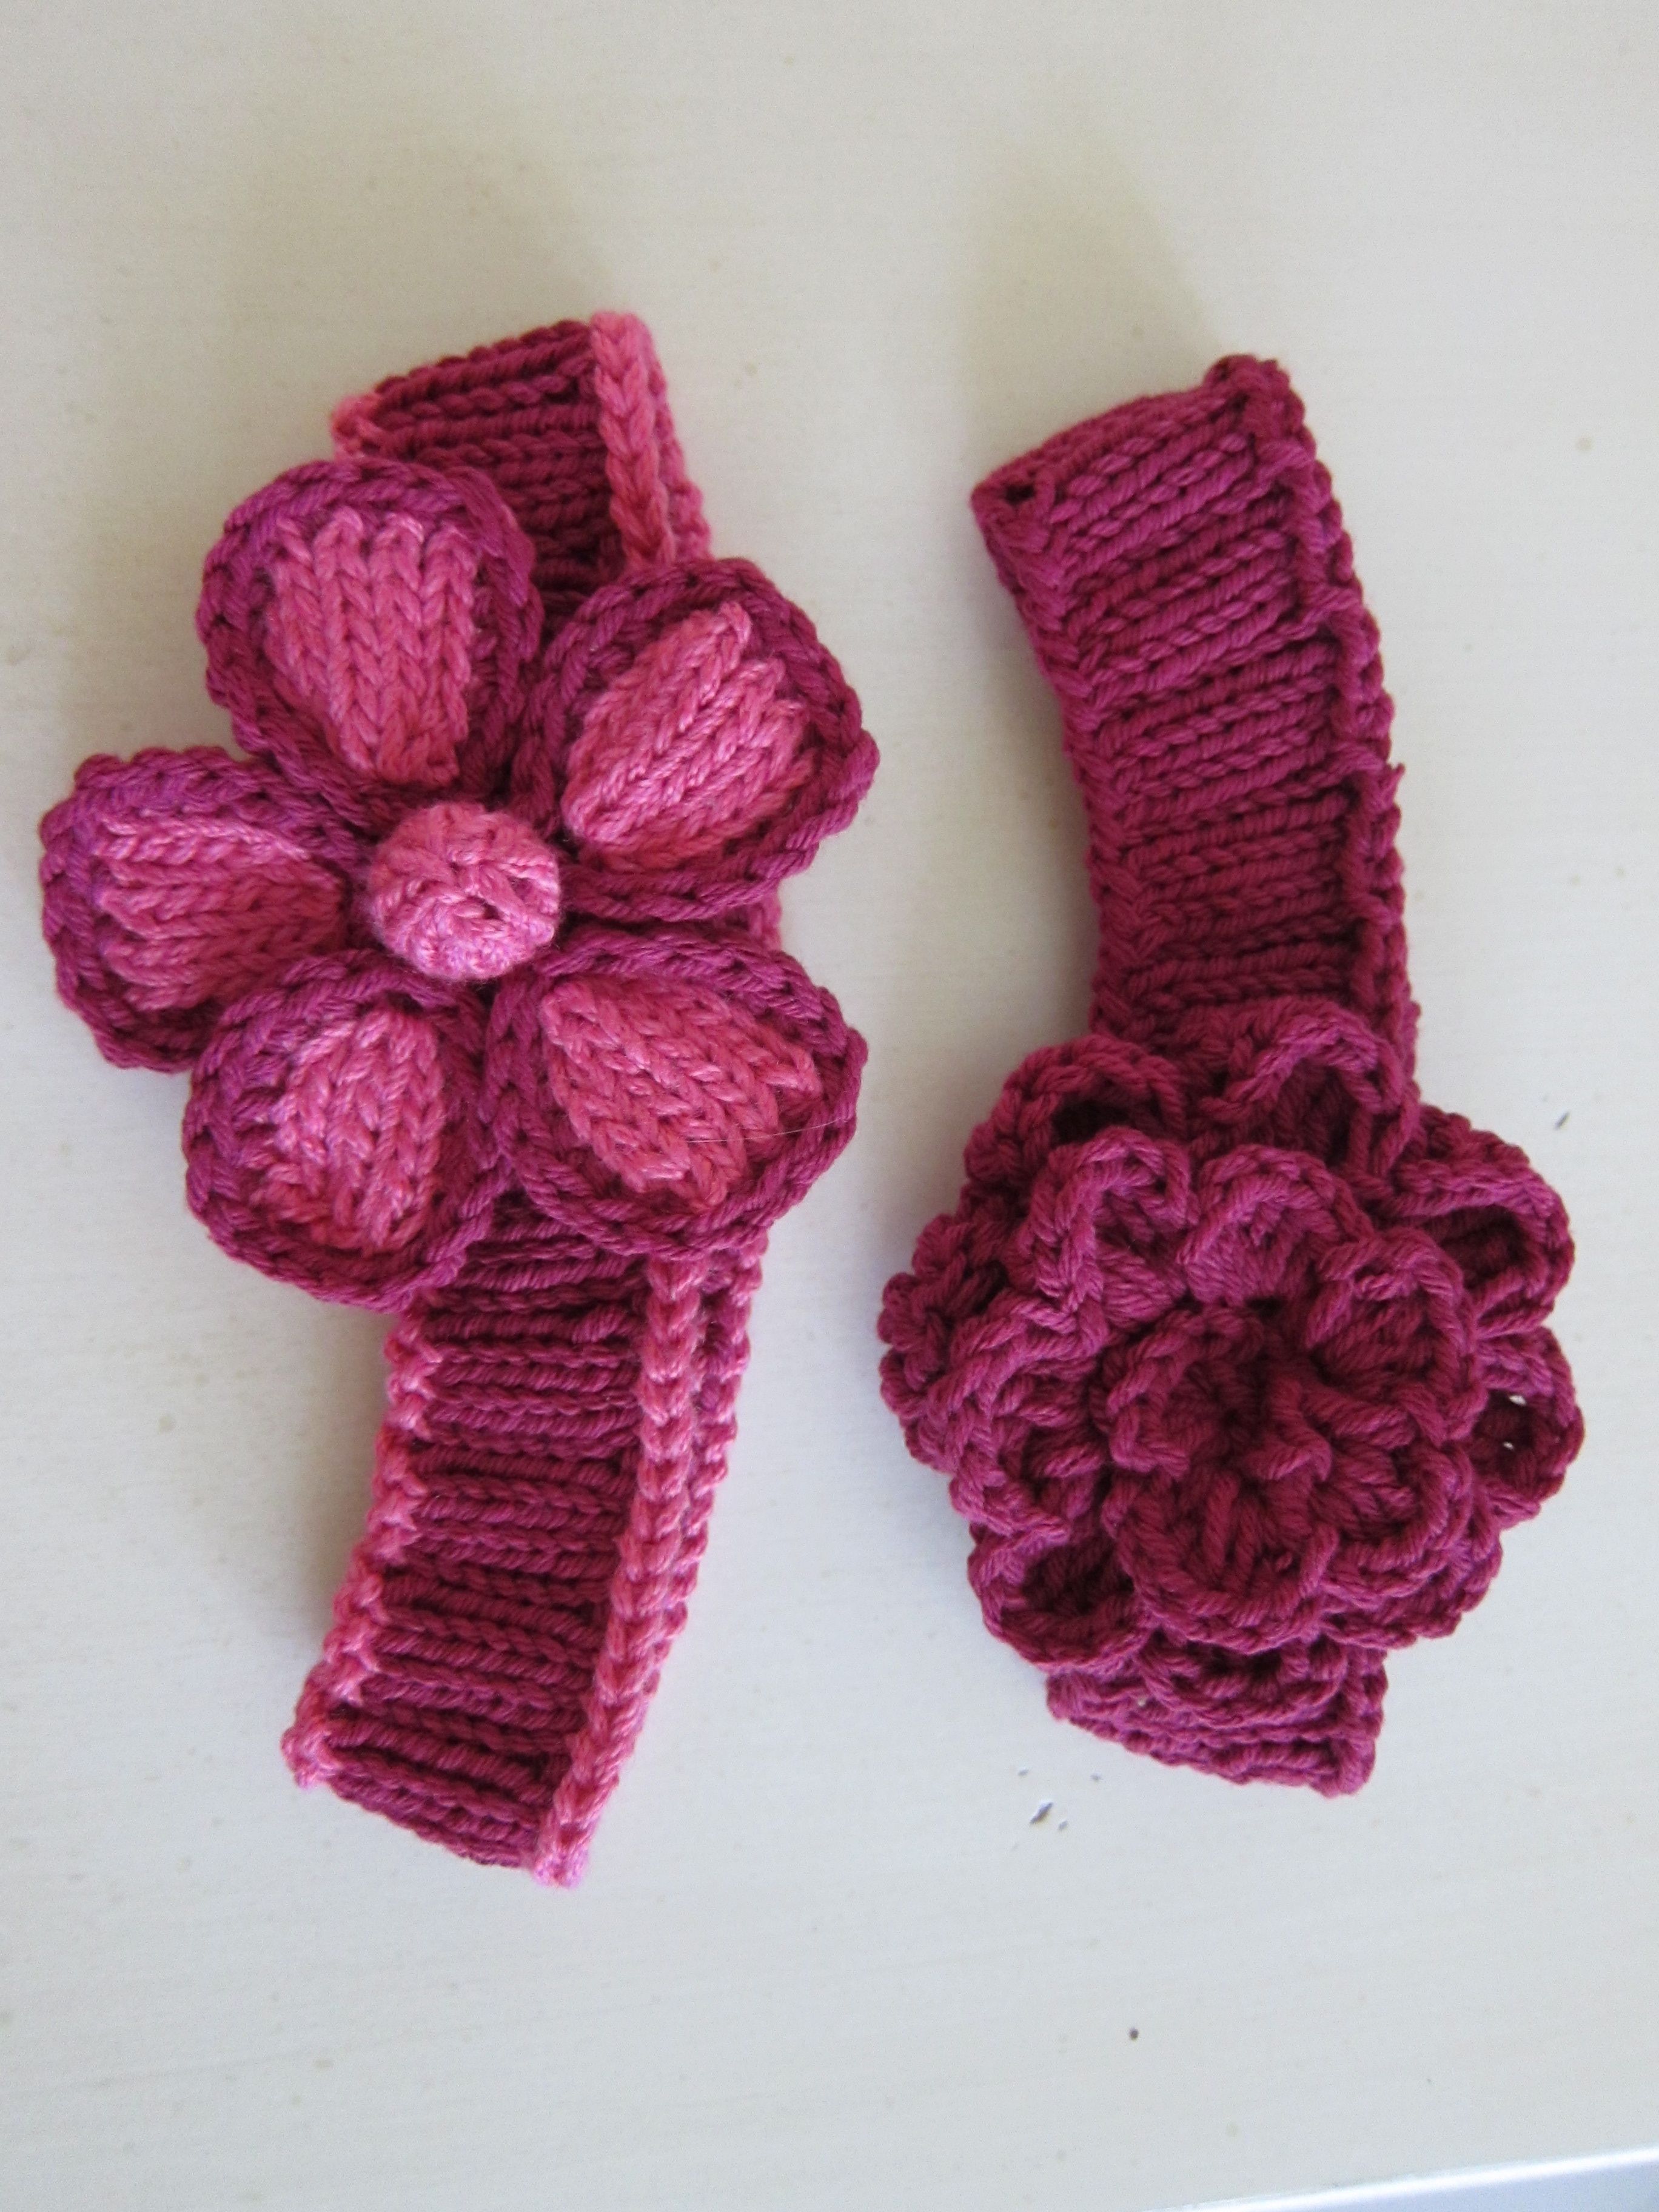 Knitted Headband With Flower Pattern 8 Knitted Headband With Flower Patterns The Funky Stitch